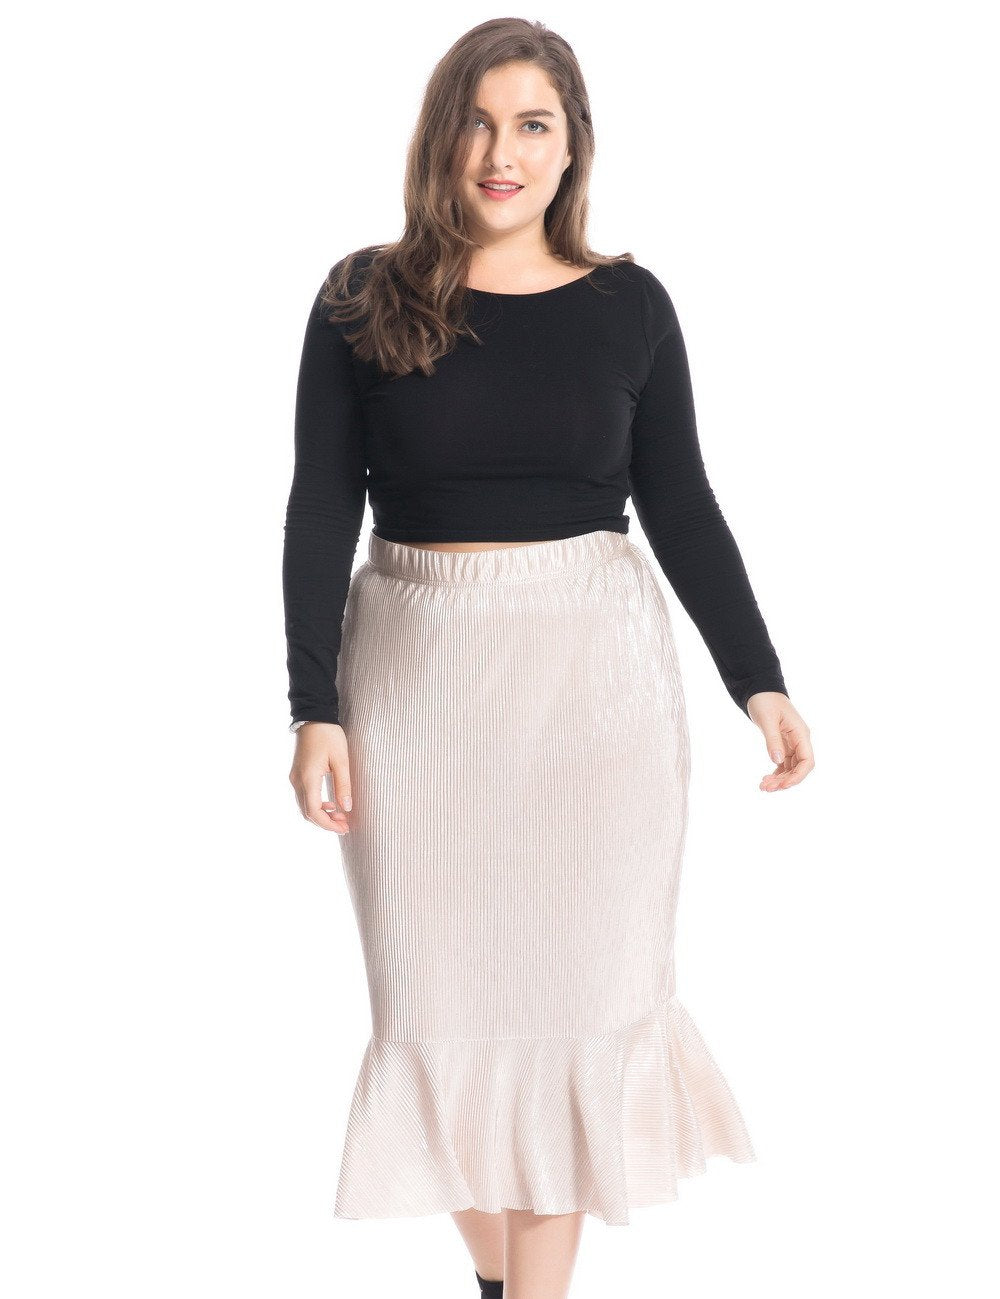 Chicwe Women's Plus Size Pleated Swing Skirt with Stretch Waist 1X-4X